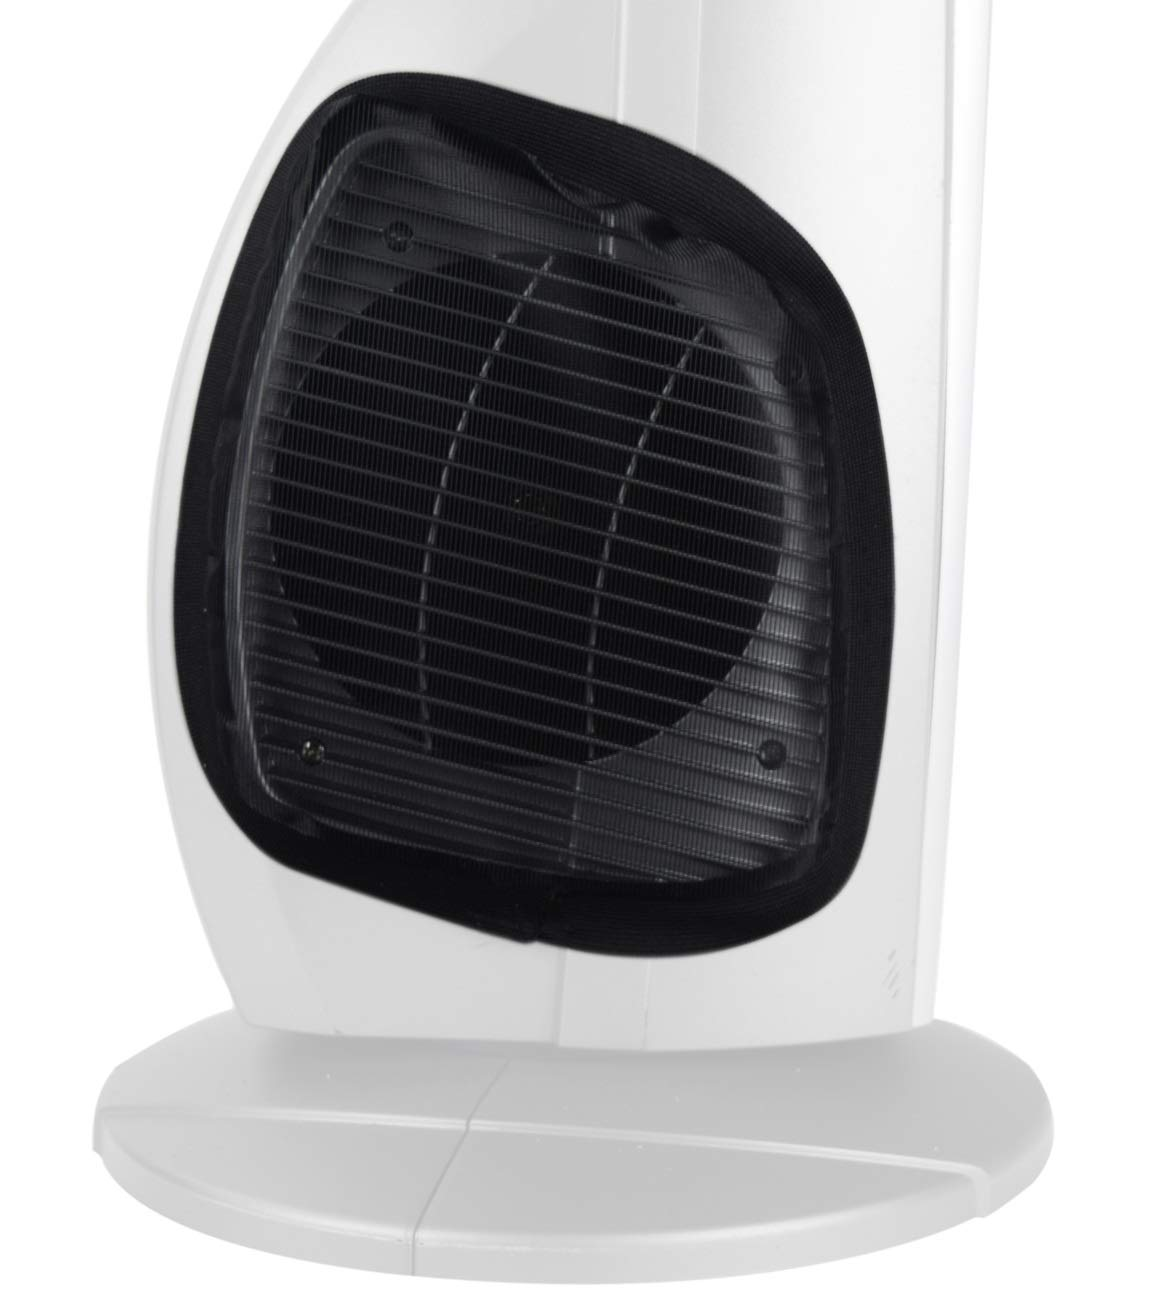 PollenTec Fan Filter Compatible with Lasko Model 4443 40'' Hybrid Tower Fan Keeps Your Fan Clean and Lasting Longer Effective at Filtering Pollen Dust Mold Spores Pet Dander Reusable Washable USA